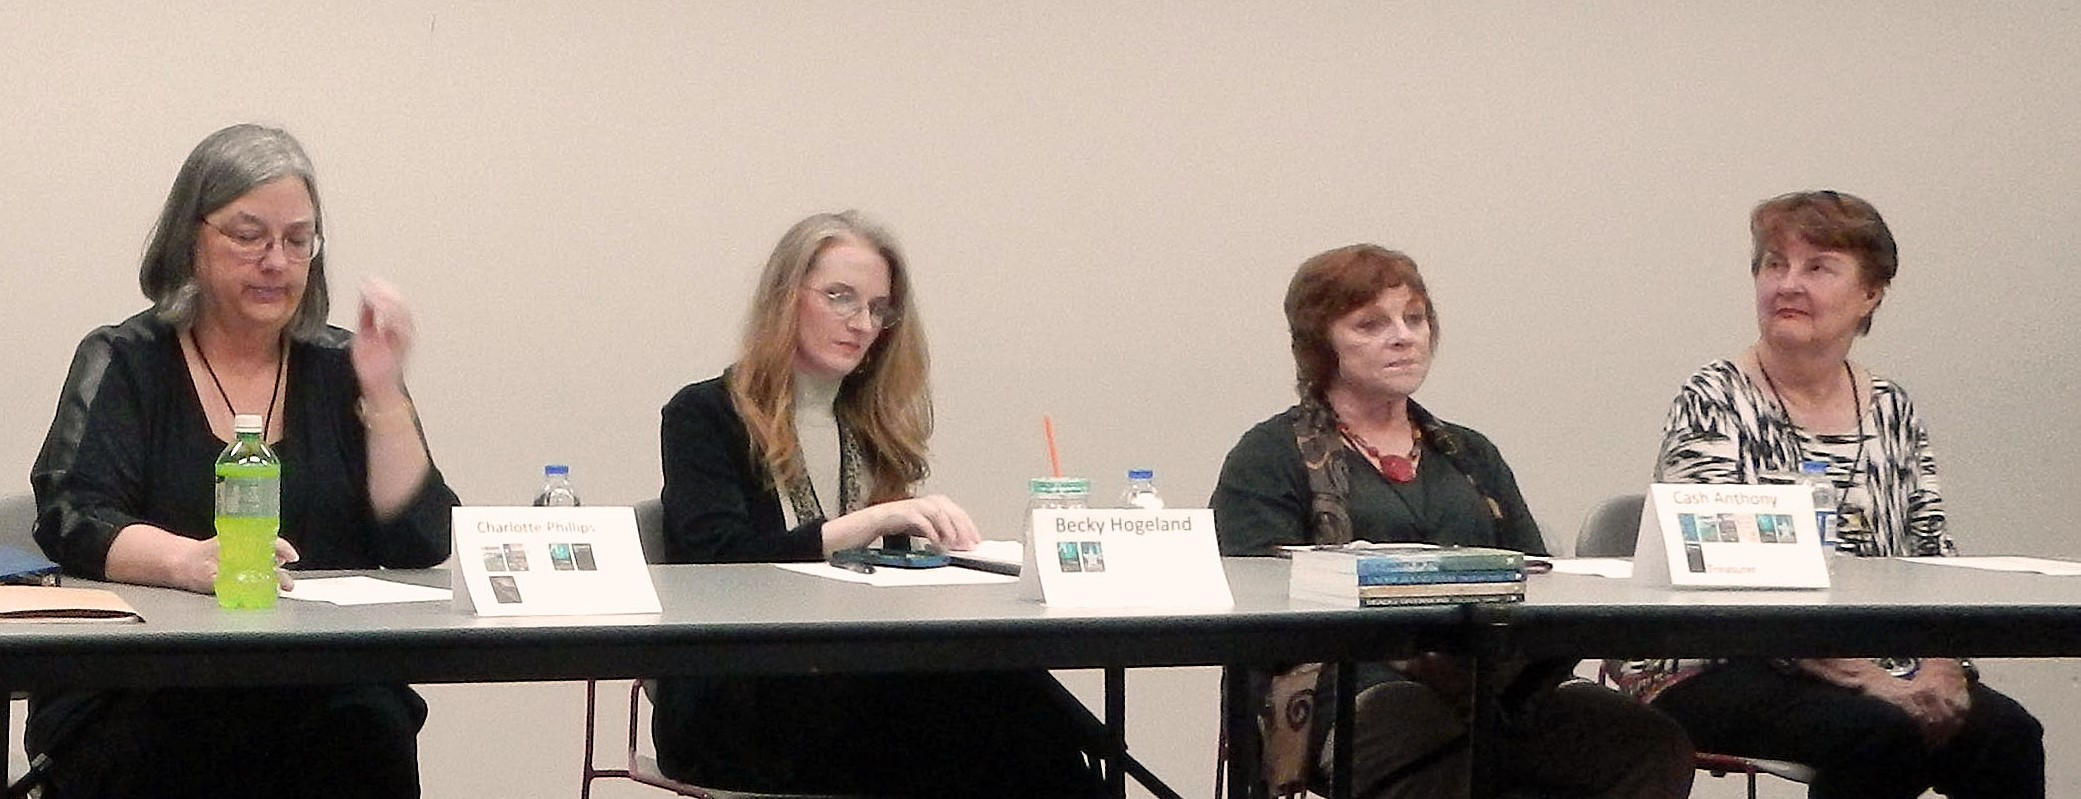 The Panel of Authors  -  Photo by Susan L. Davenport